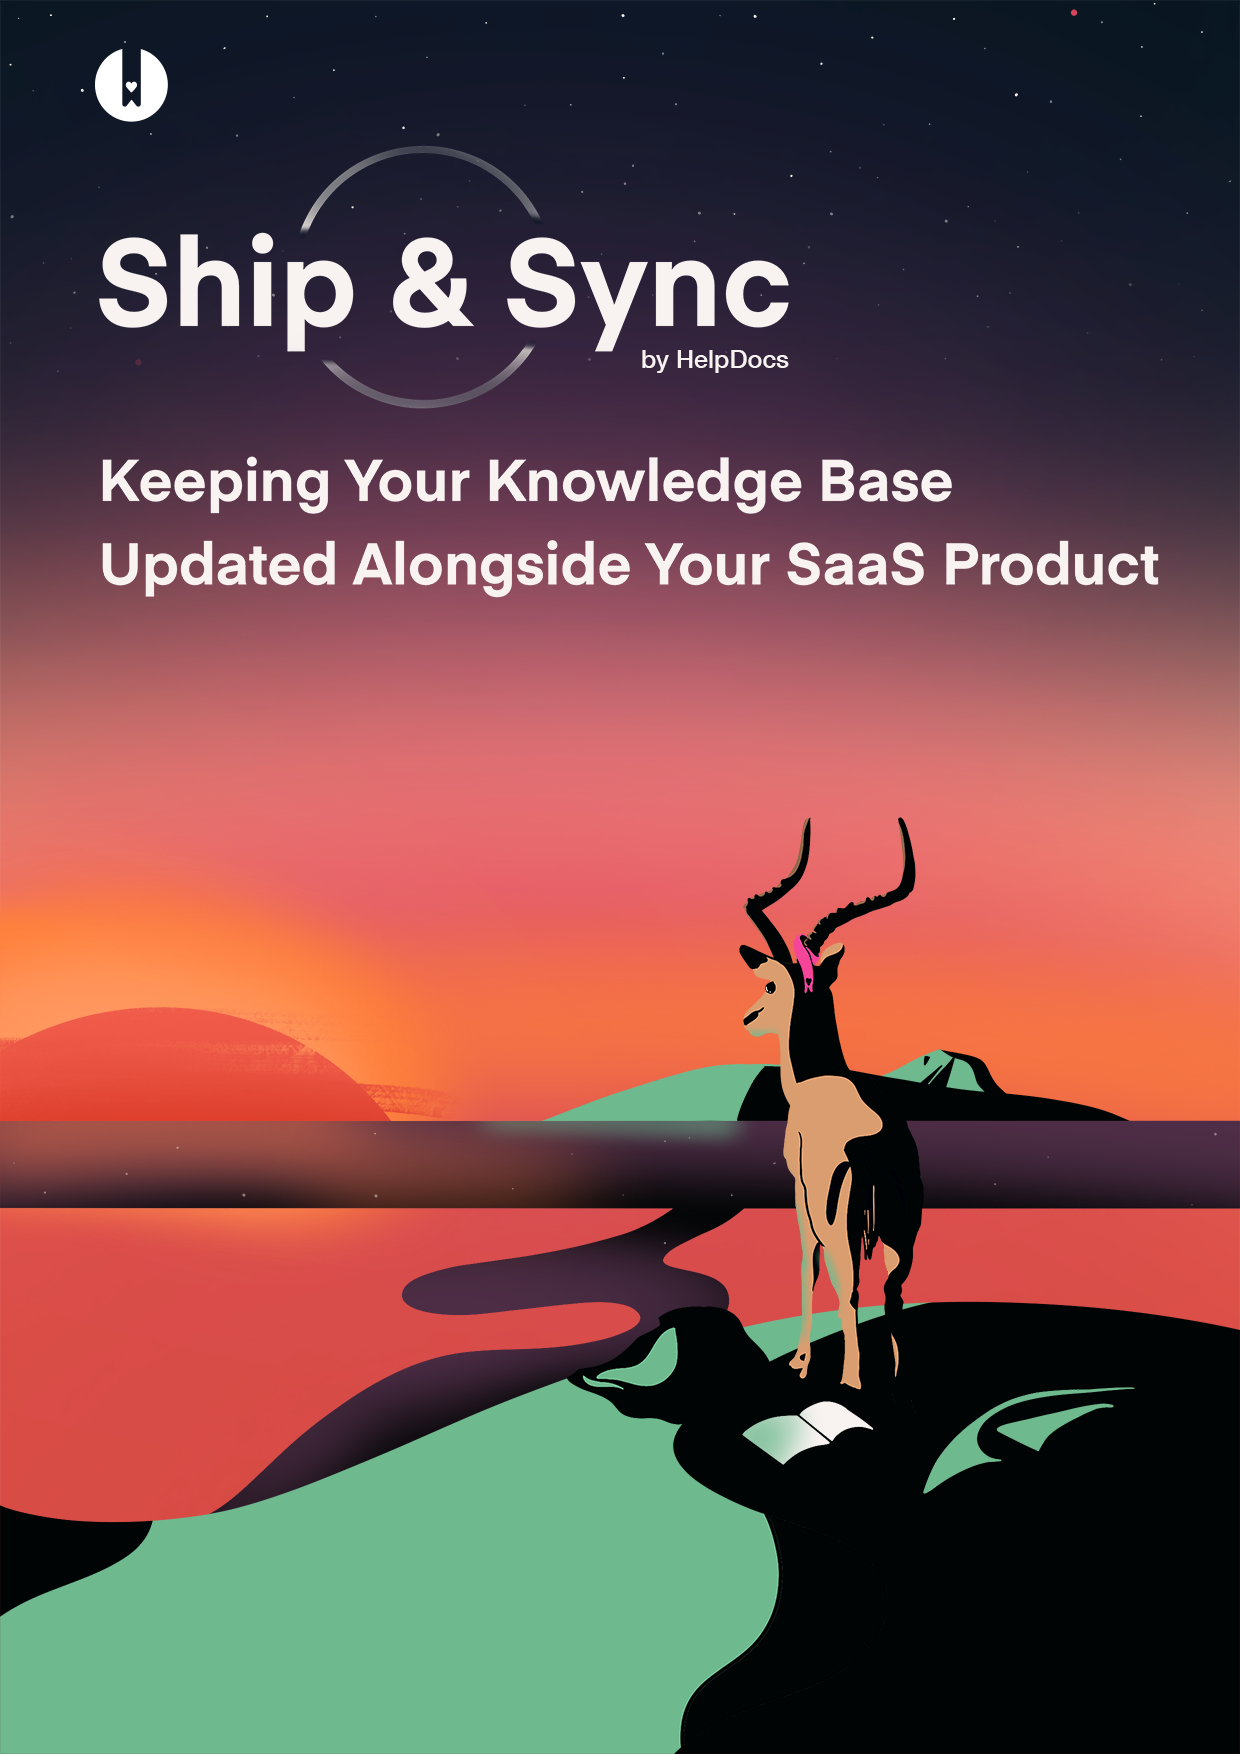 Ship & Sync: Keeping Your Knowledge Base Updated Alongside Your SaaS Product